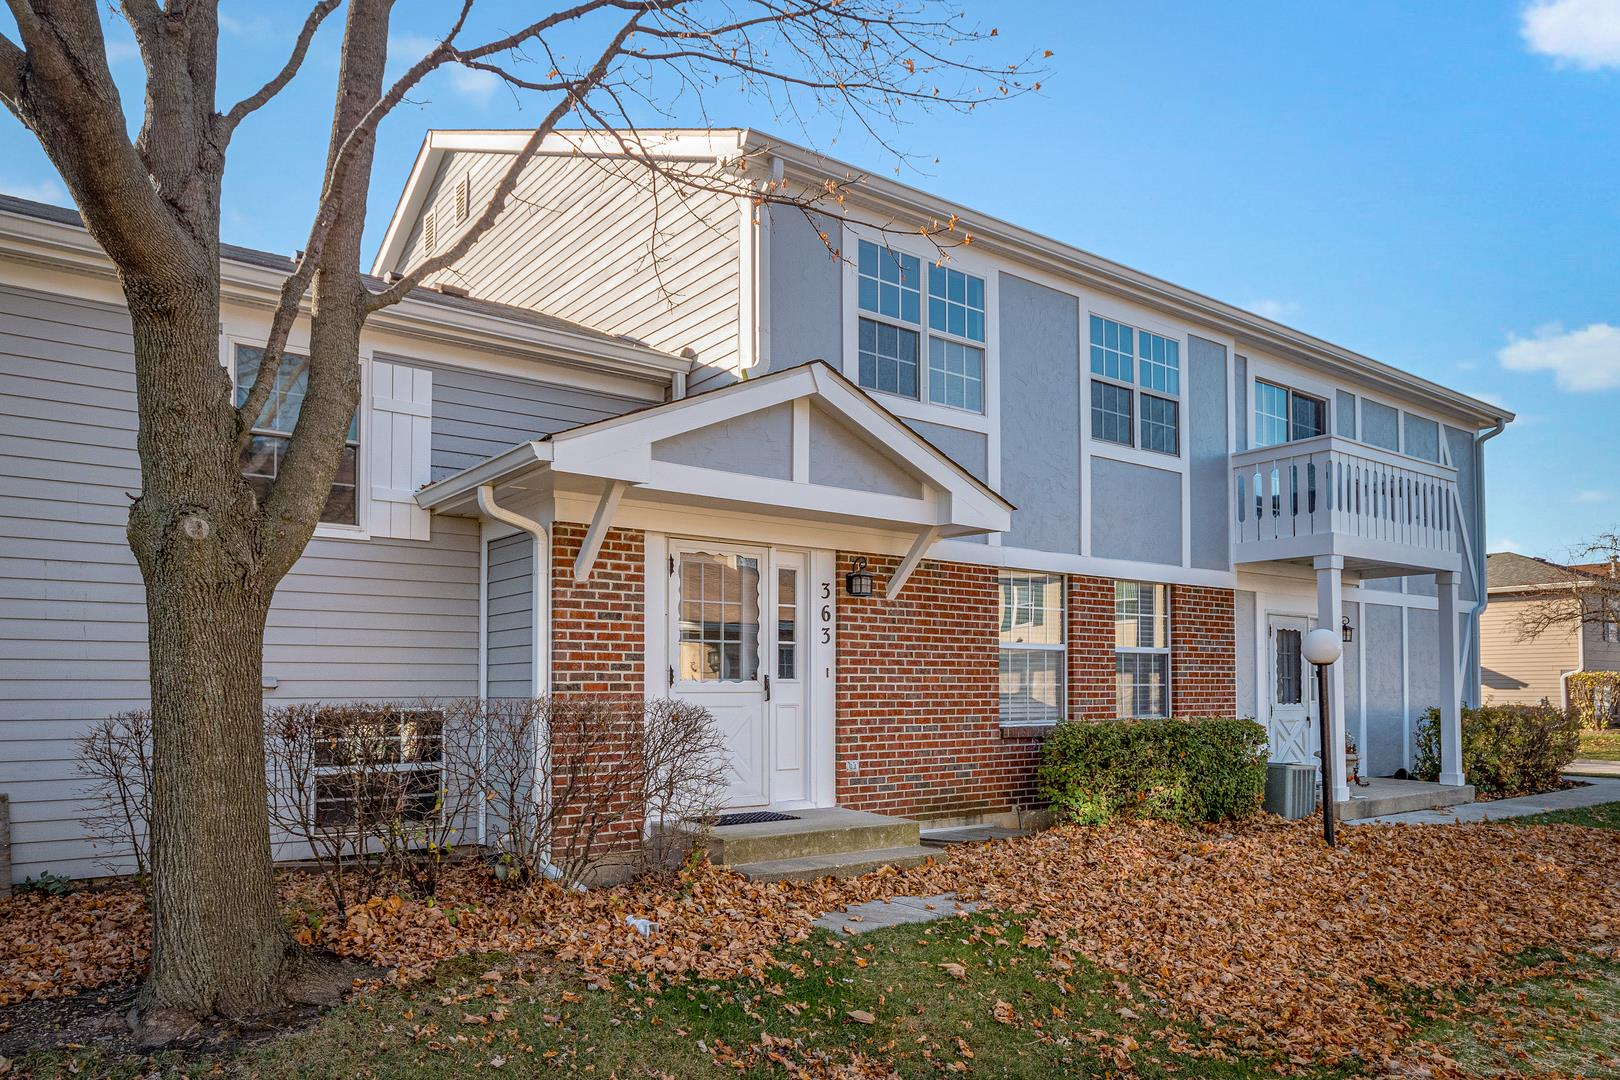 363 Birchwood Court #363, Vernon Hills, IL 60061 - #: 10920155